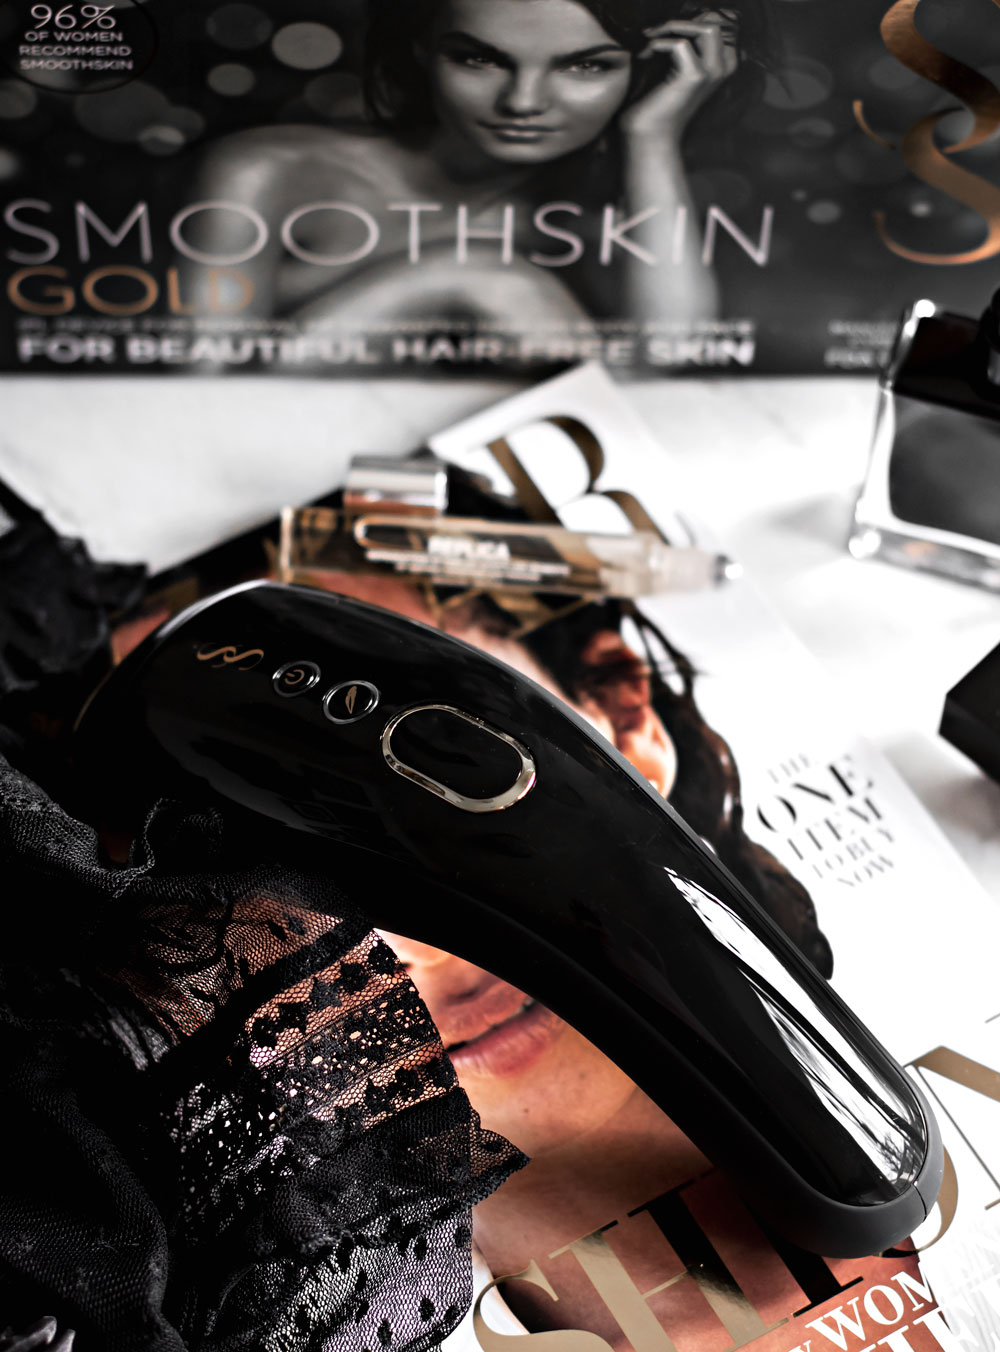 SmoothSkin-Gold-IPL-Hair-Removal-Device-Review